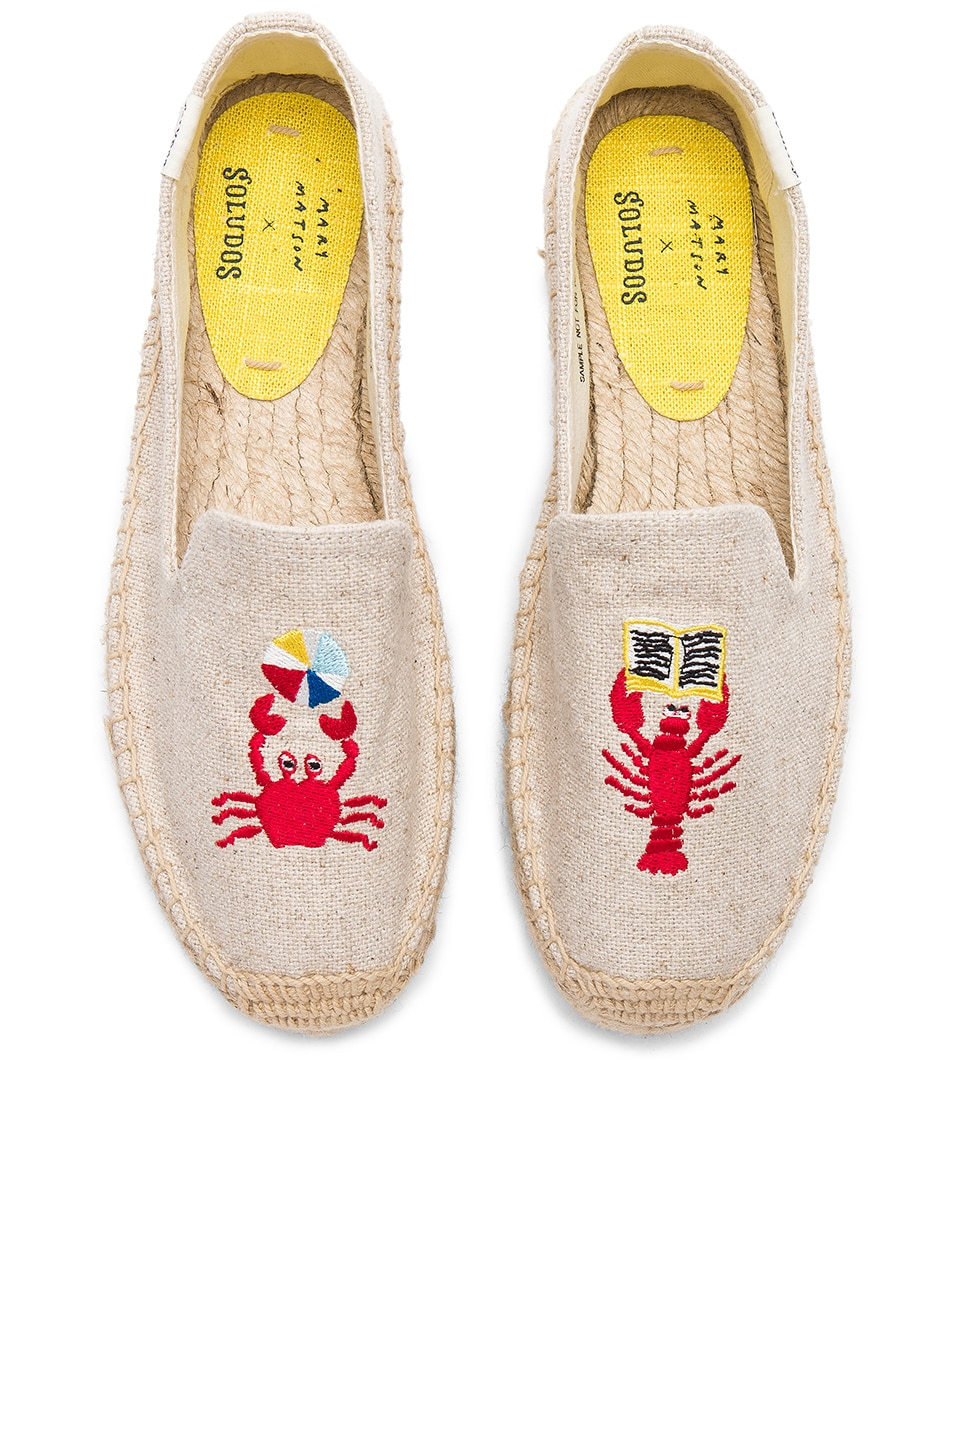 Soludos Canvases LOBSTER AND CRAB PLATFORM